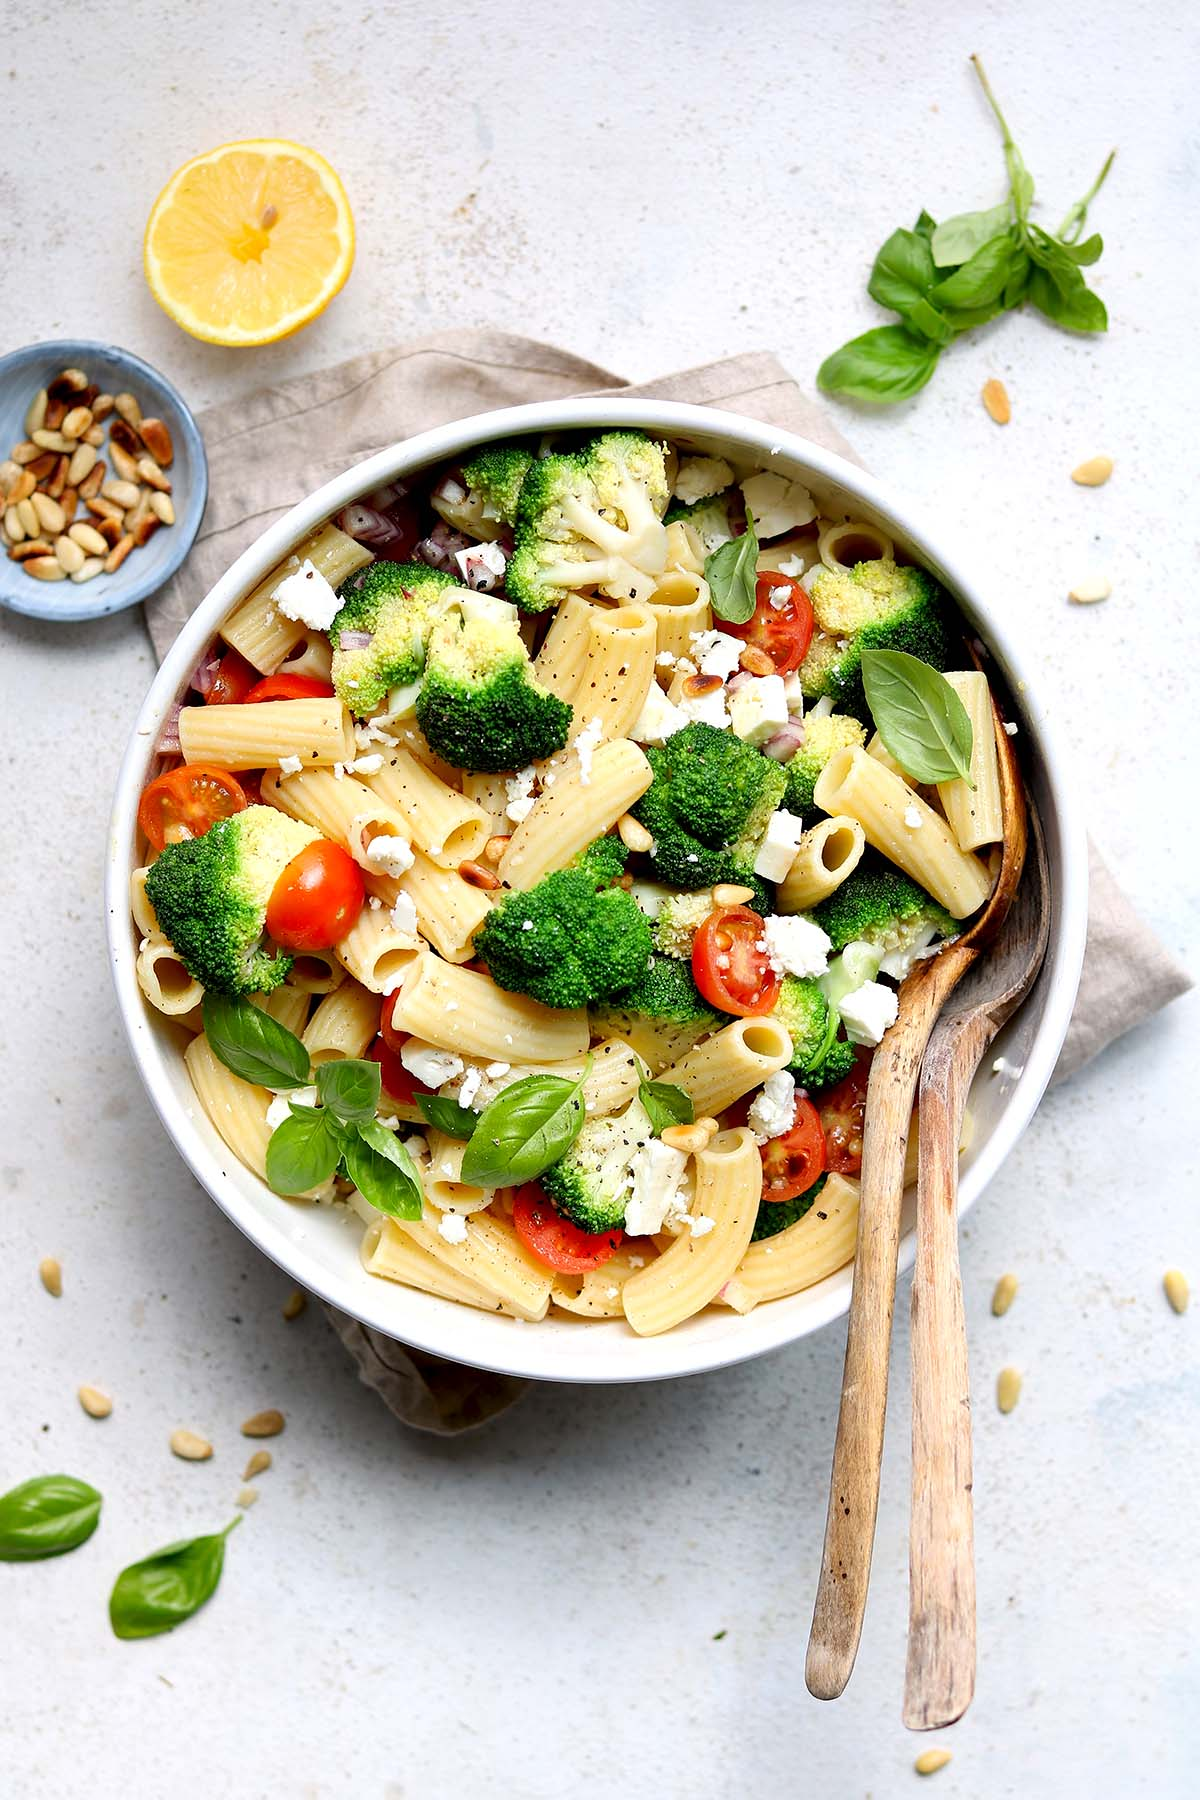 A pasta salad made with broccoli, tomatoes, feta, basil and pine nuts